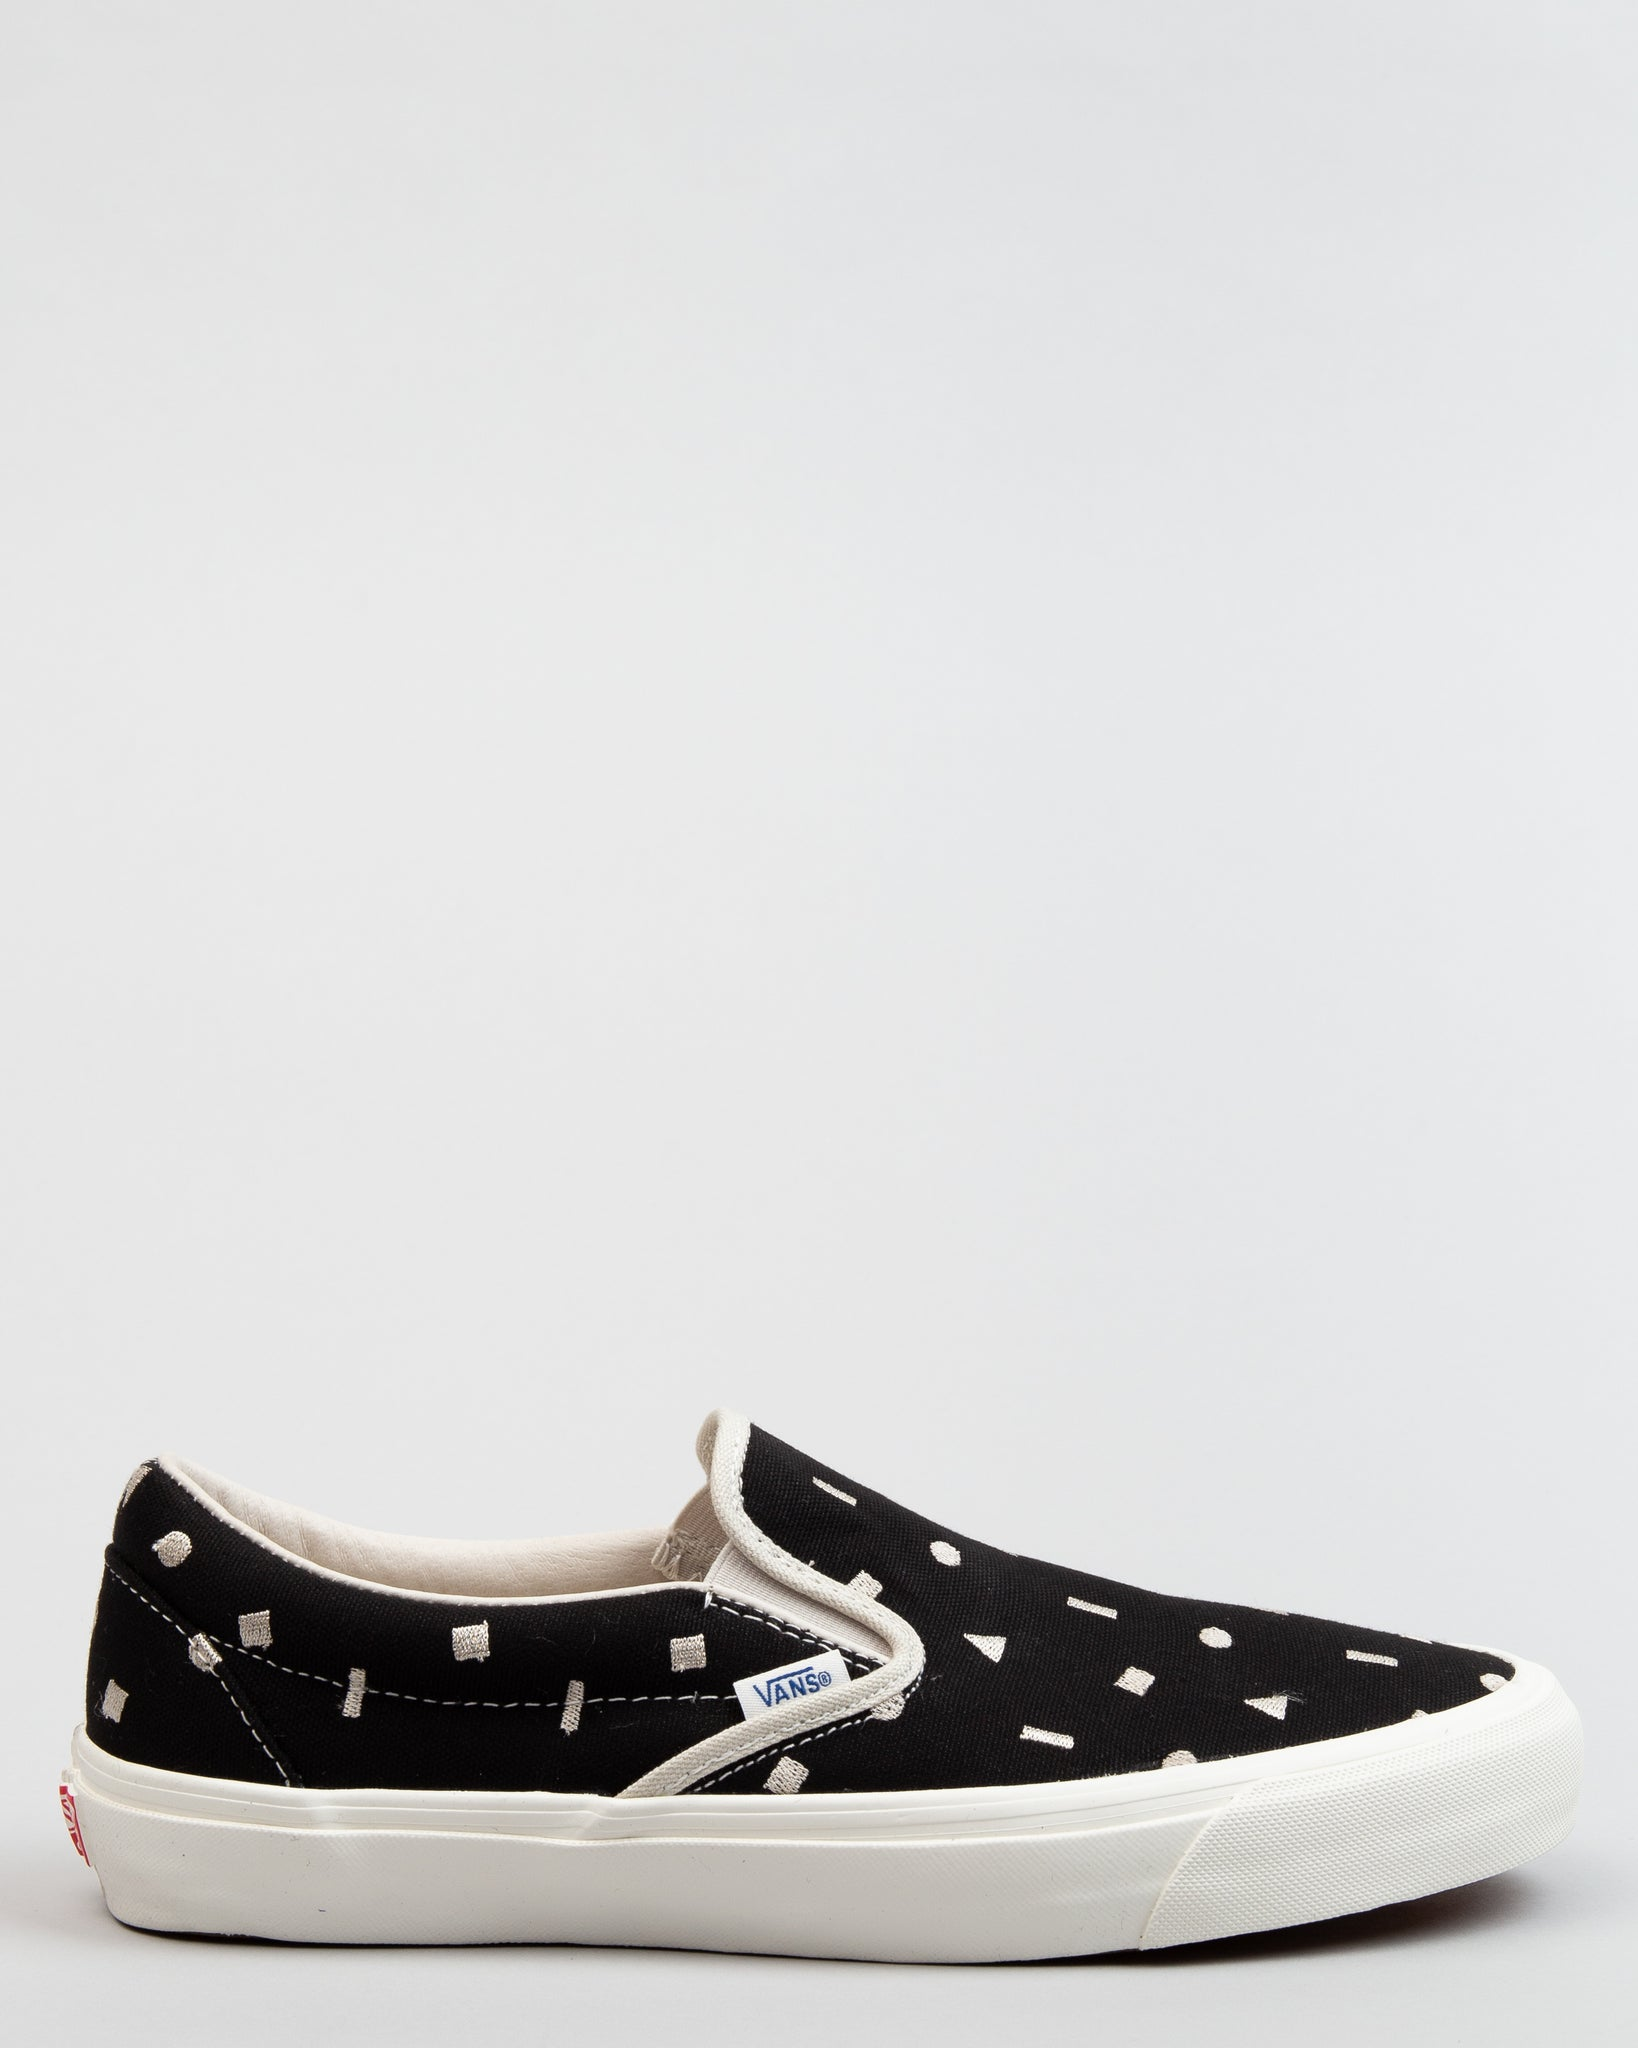 OG Slip-On LX (Canvas/Embroidery) Black